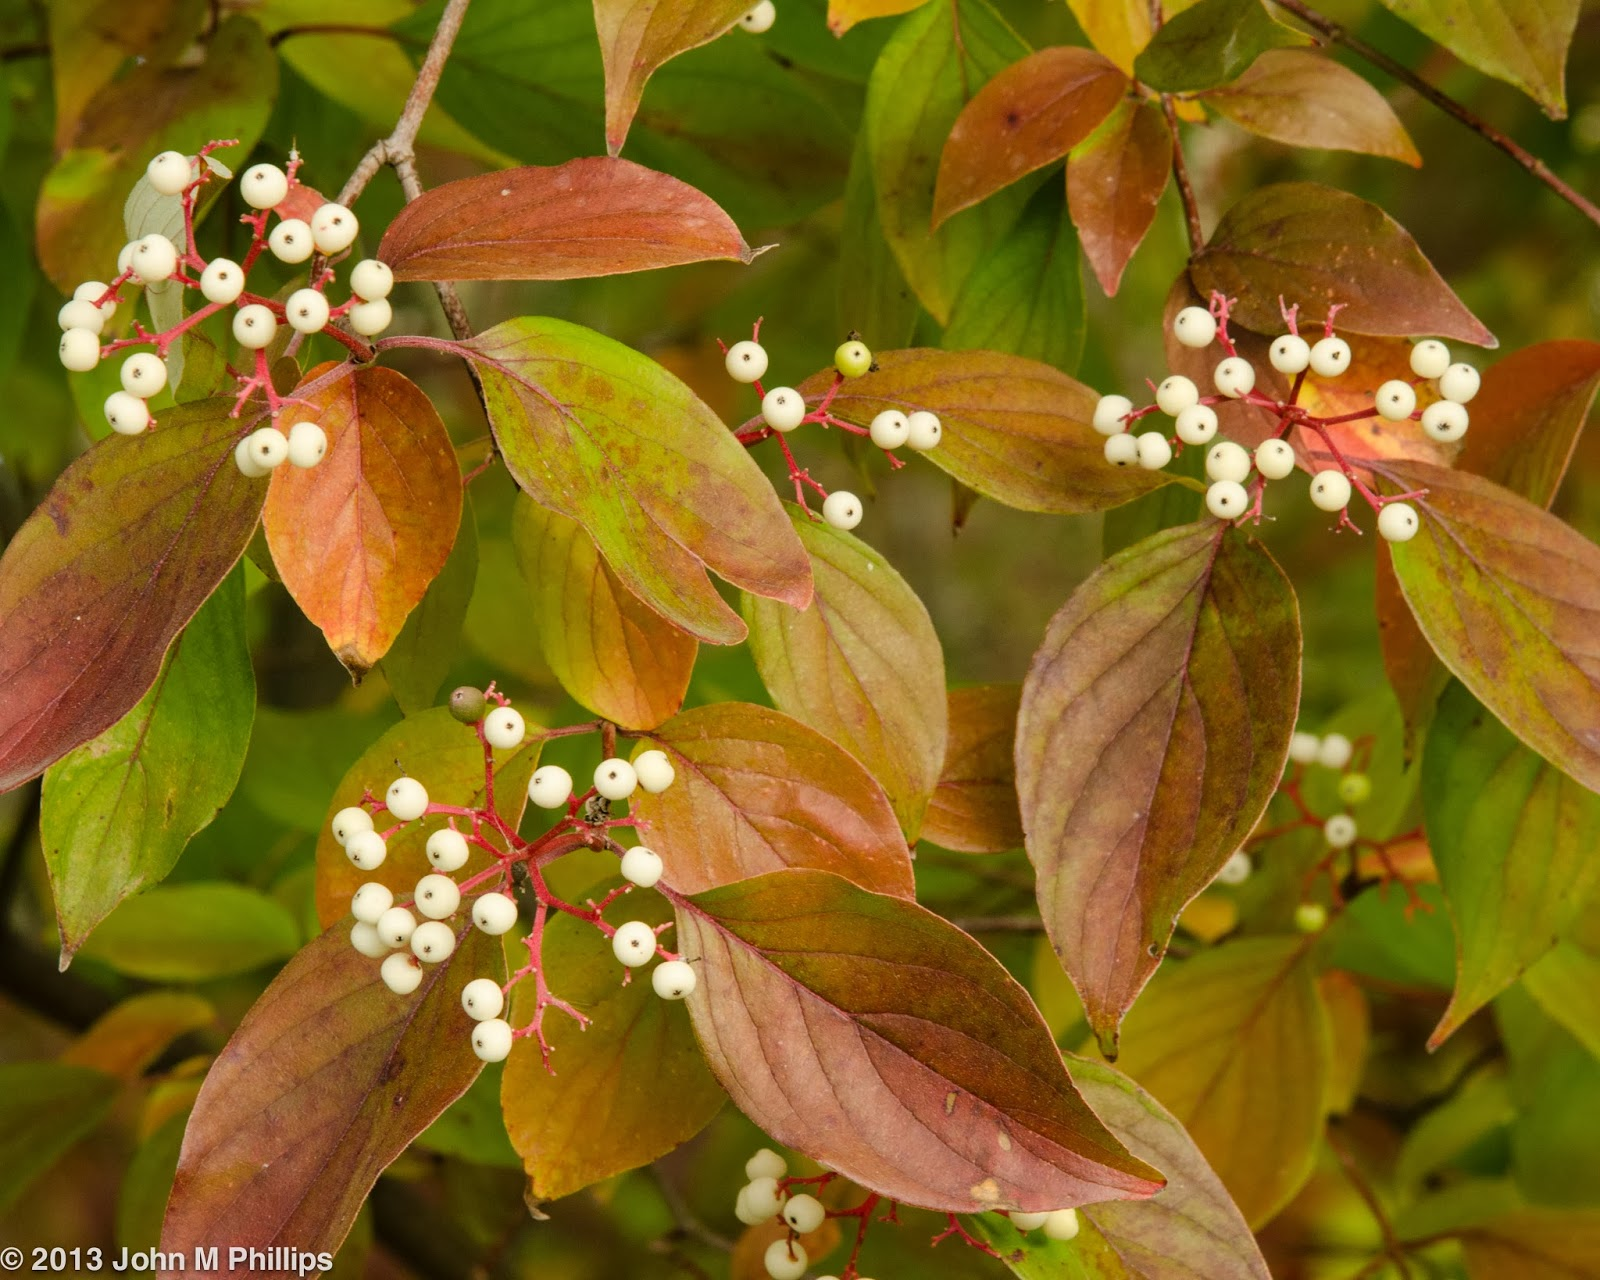 OK, so even though I was focusing on fall color, the following is a ...